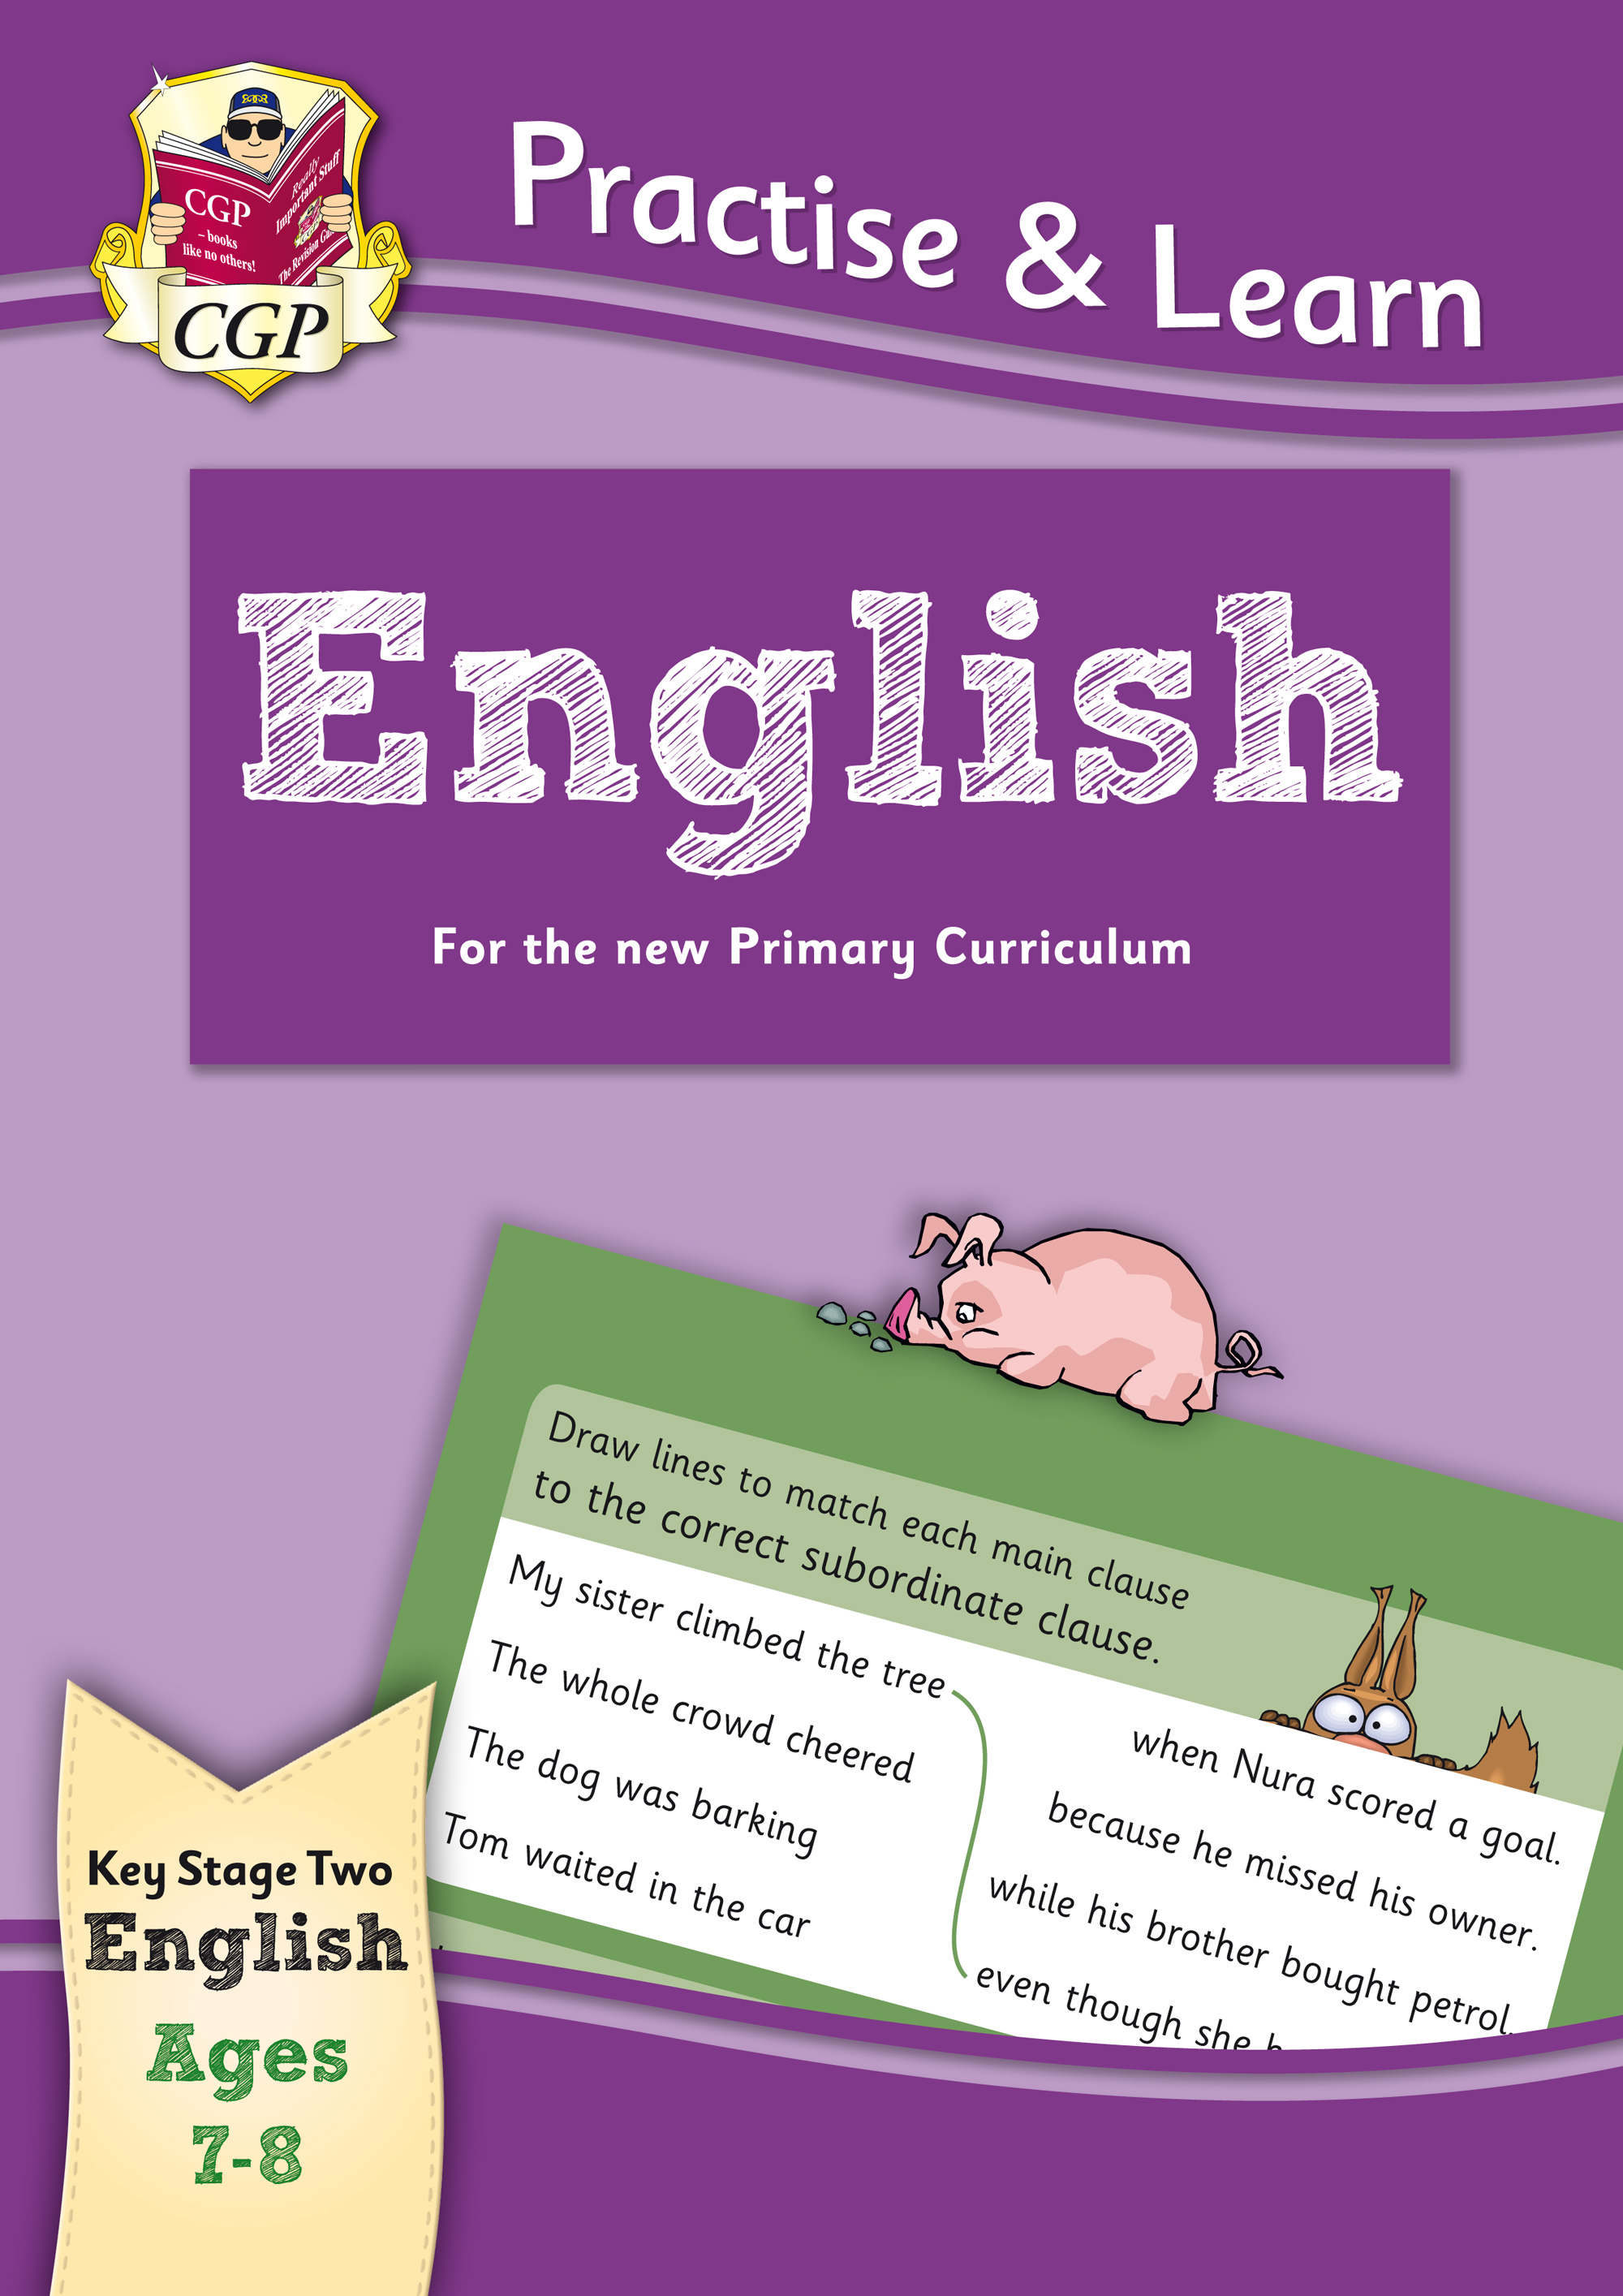 EP3Q22 - New Practise & Learn: English for Ages 7-8